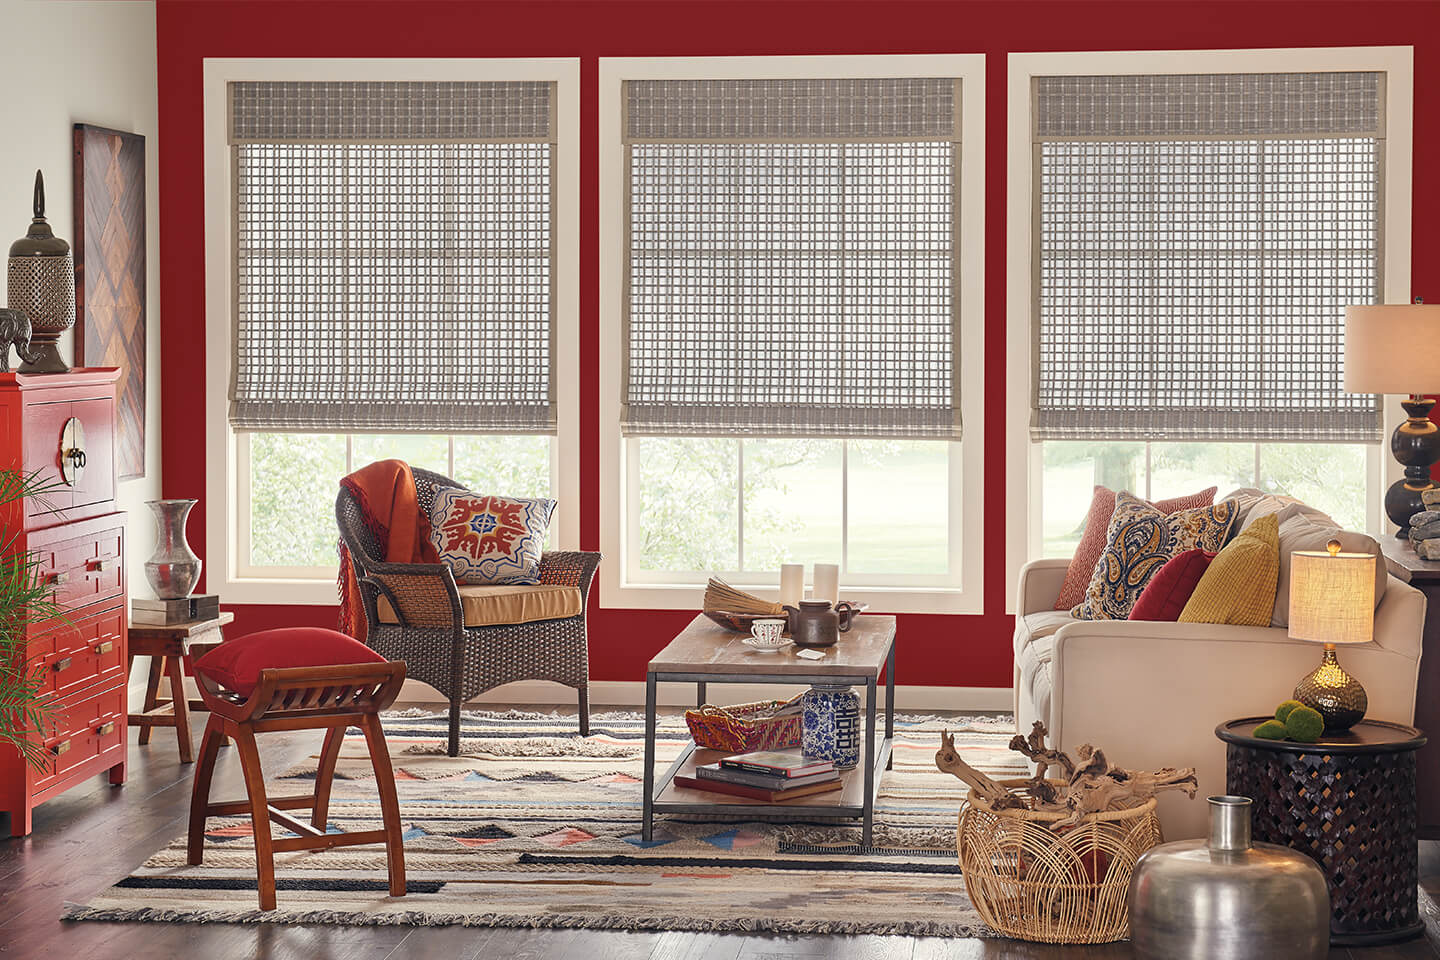 curtains coverings window elegant awesome hunter douglas decorative u lamps fresh costco with table home decorating interesting interior blinds furniture